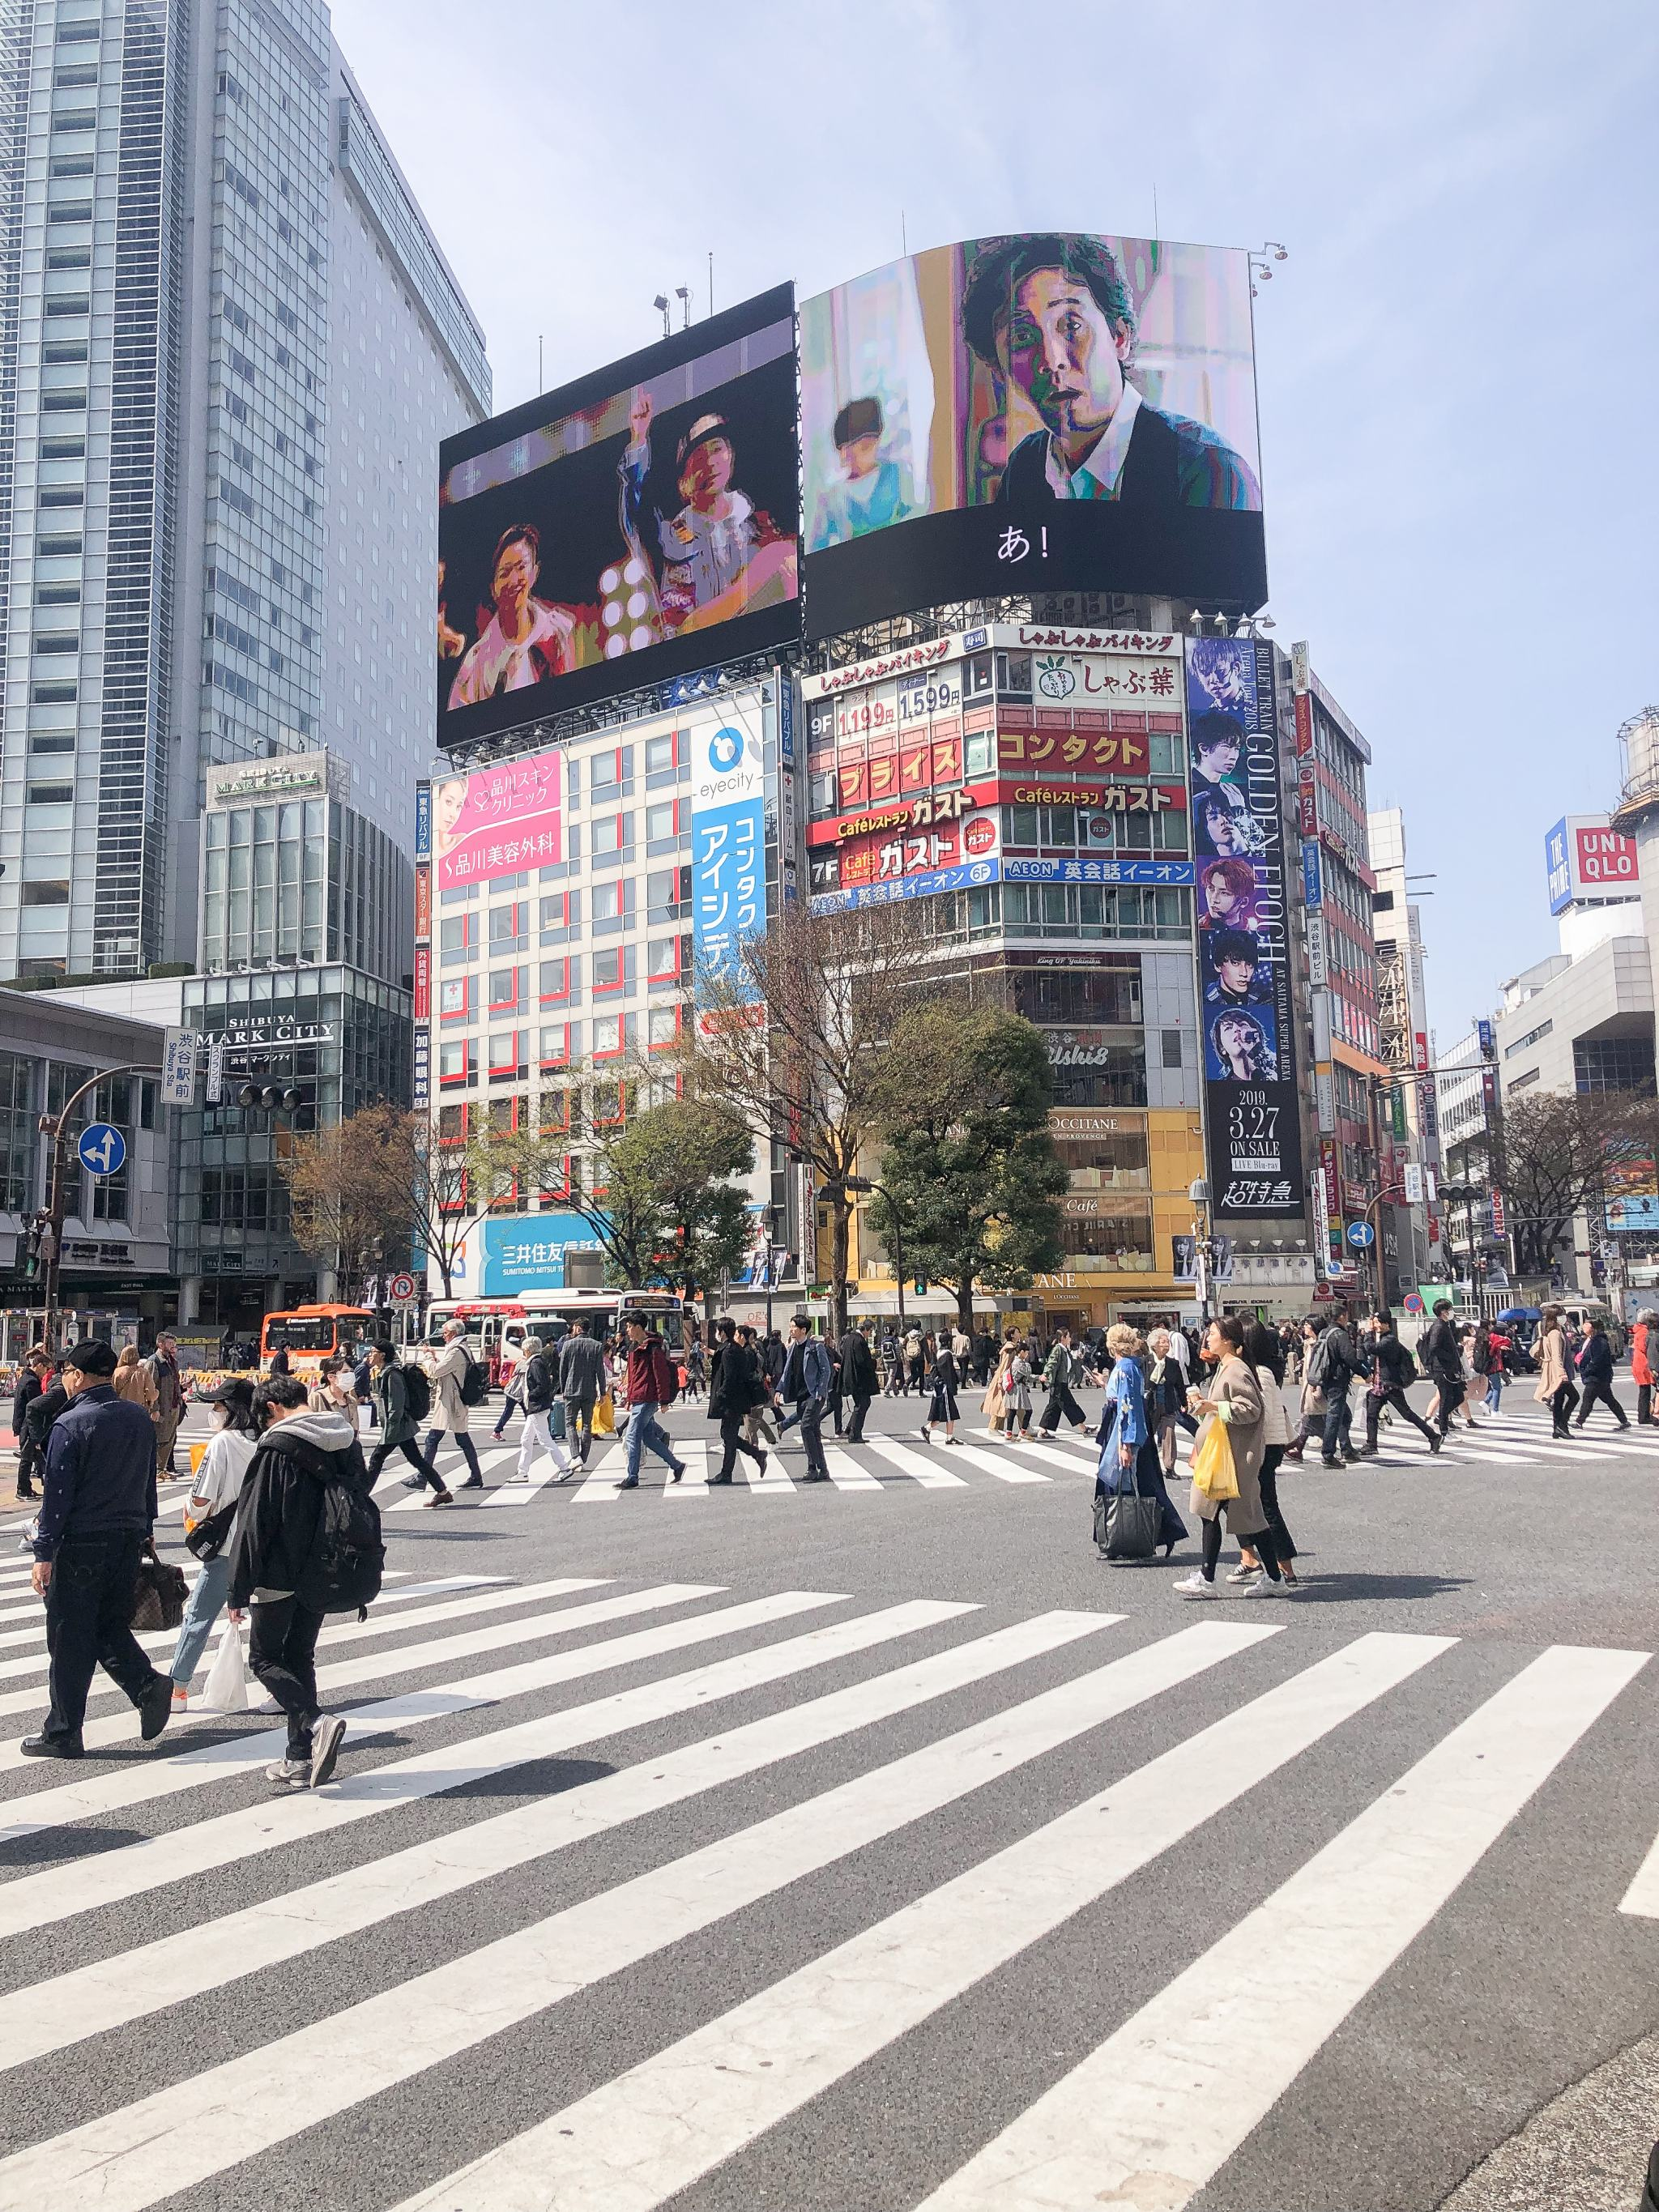 Tokyo - traveling in Tokyo - what to see in Japan - Meguro River Cherry Blossoms - Shibuya Crossing